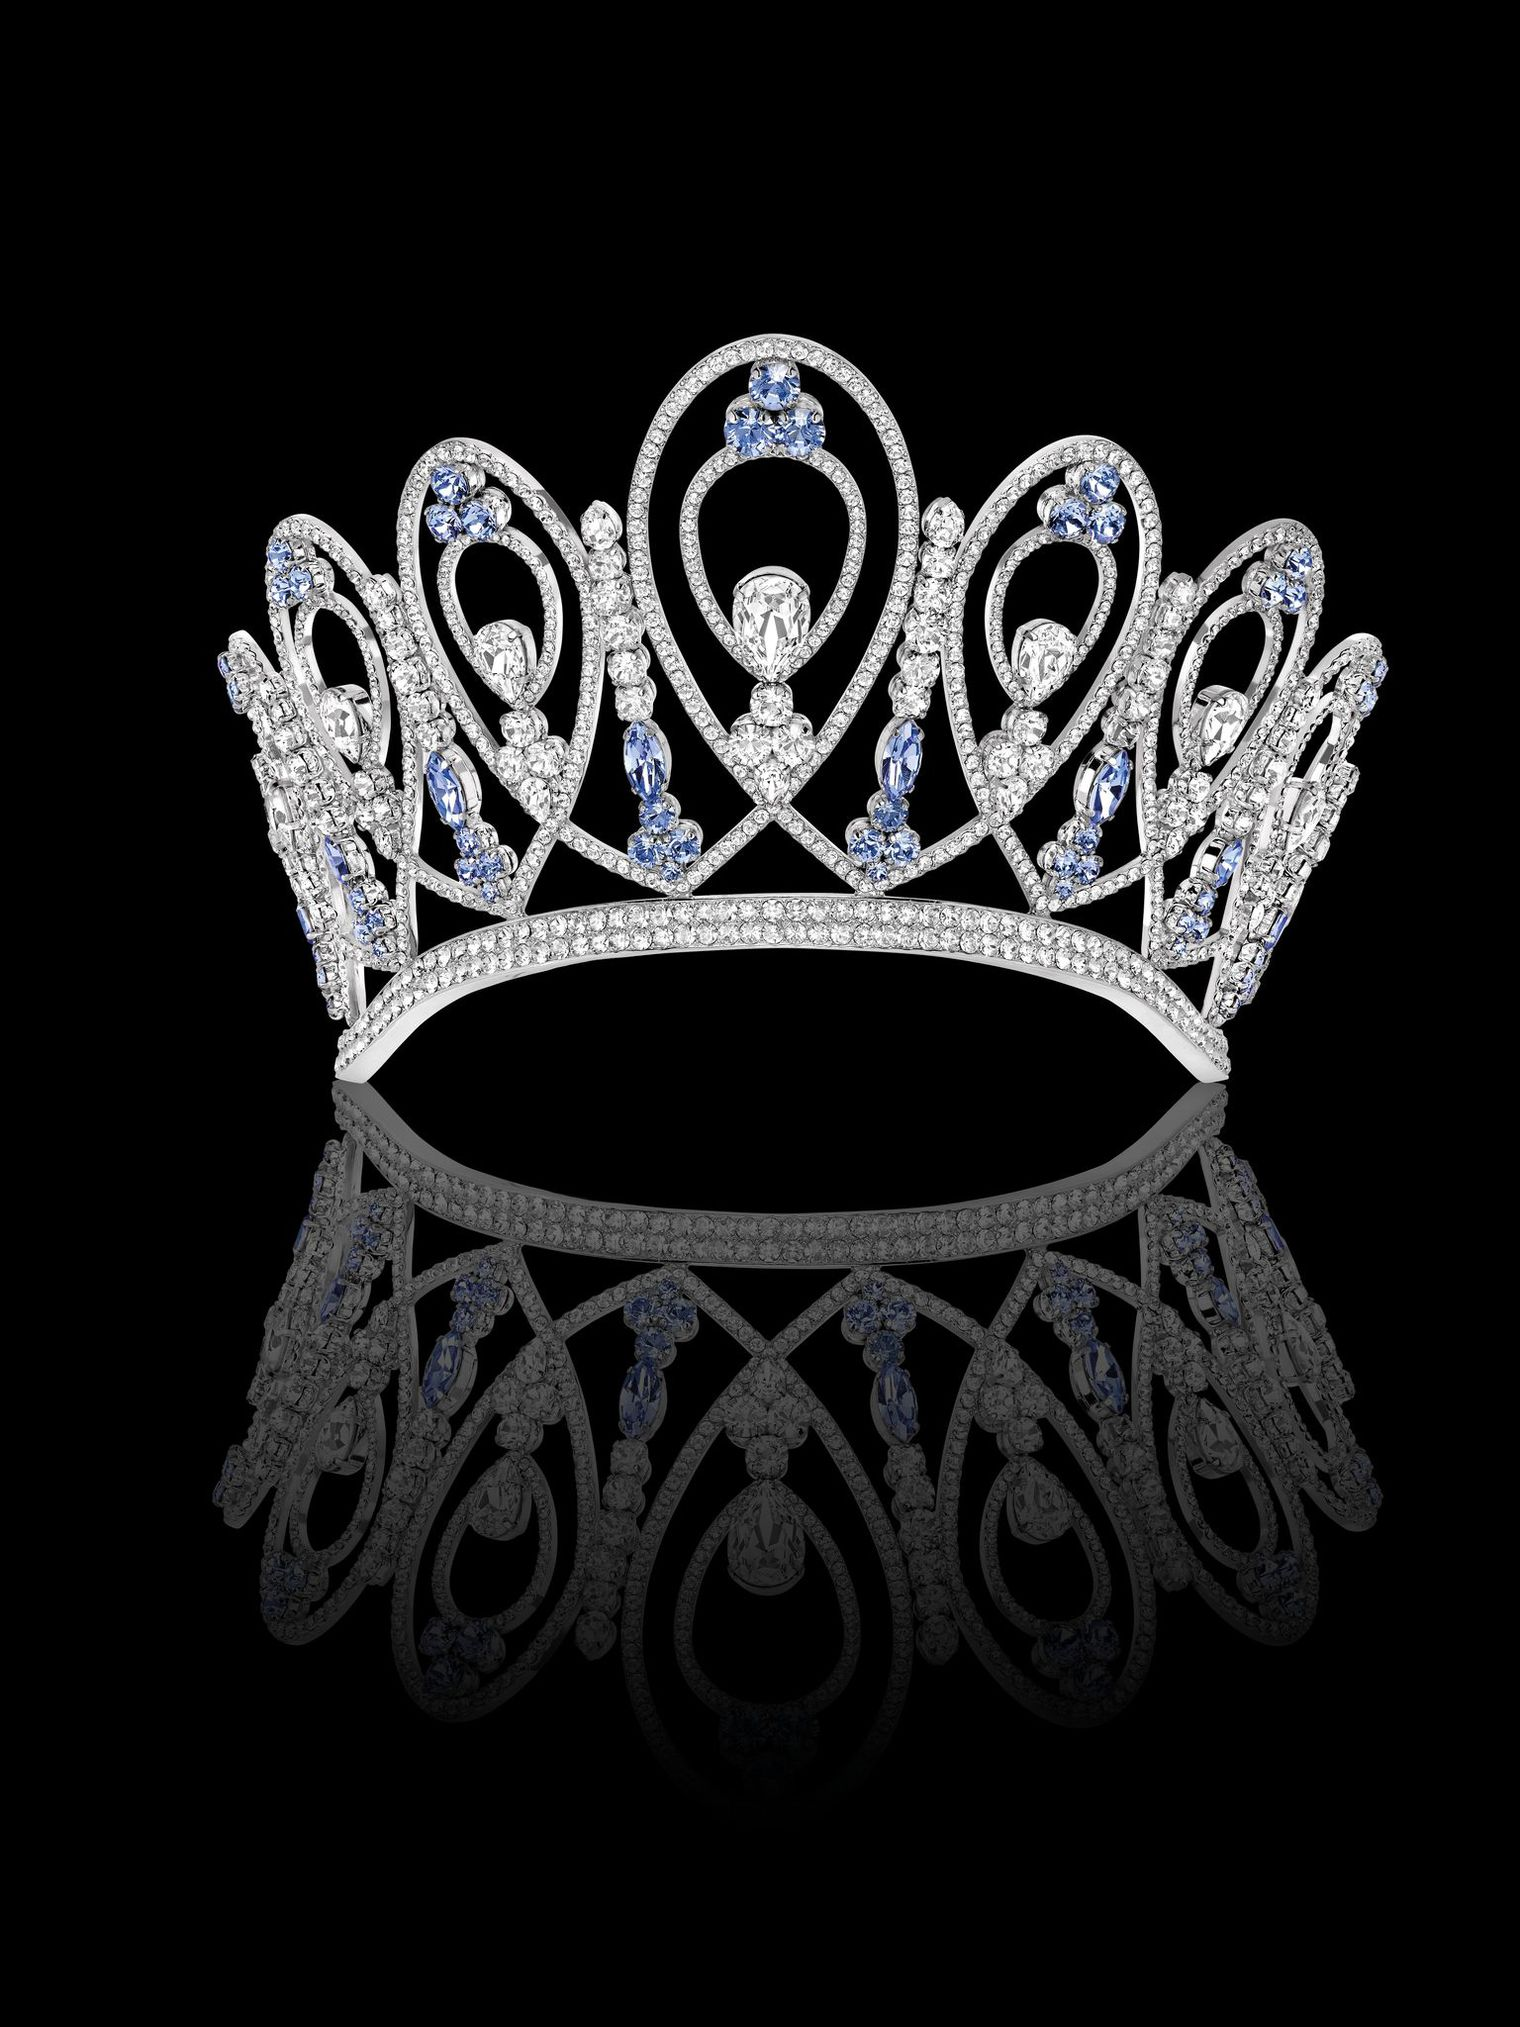 la couronne de miss france 2018 par julien d u0026 39 orcel